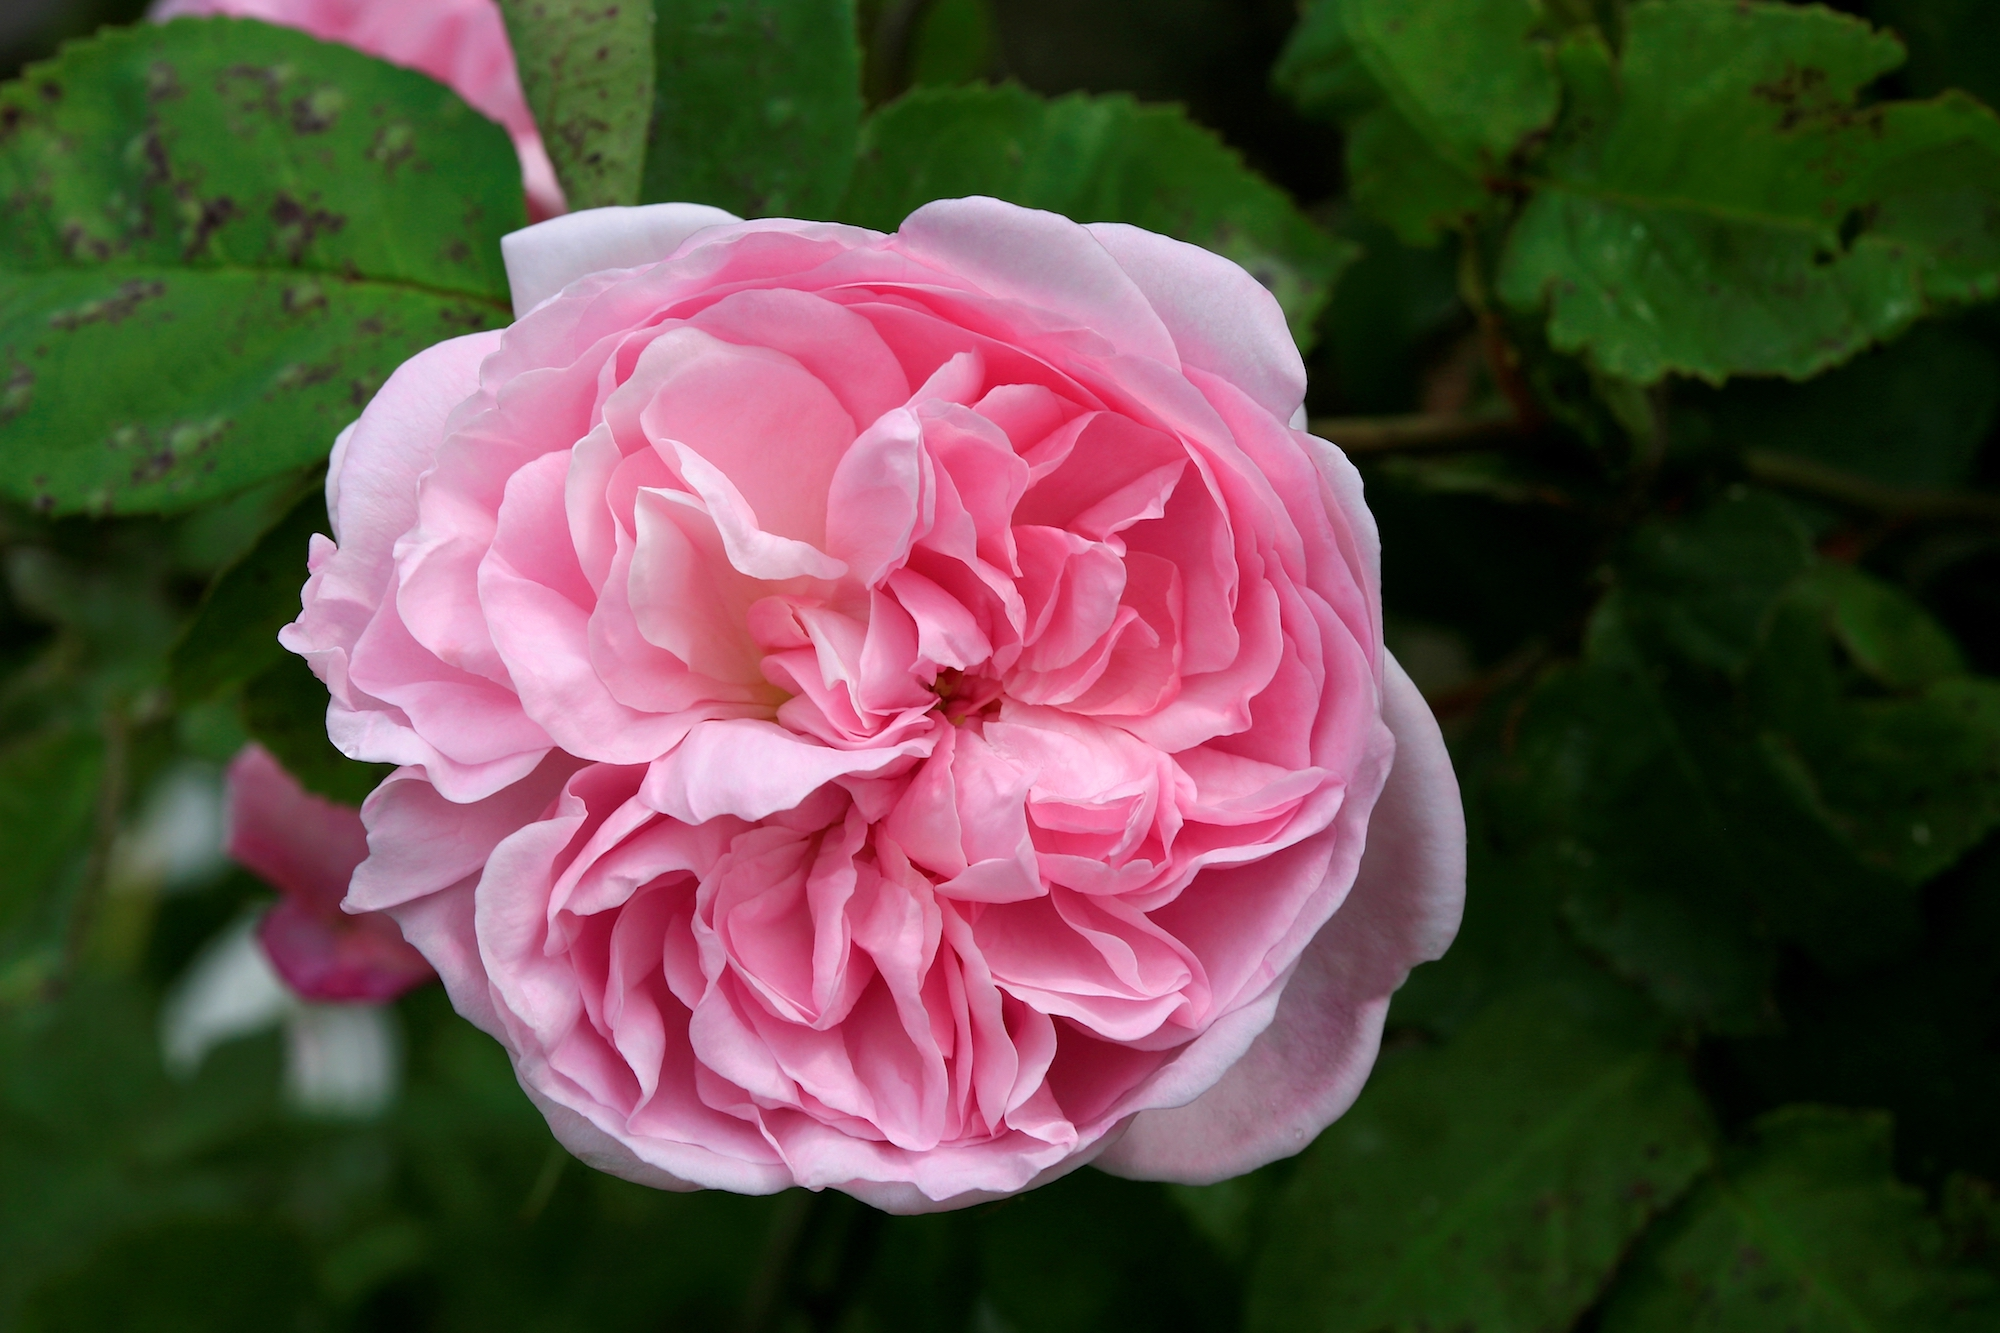 Rosa centifolia in chanel no 5 perfume